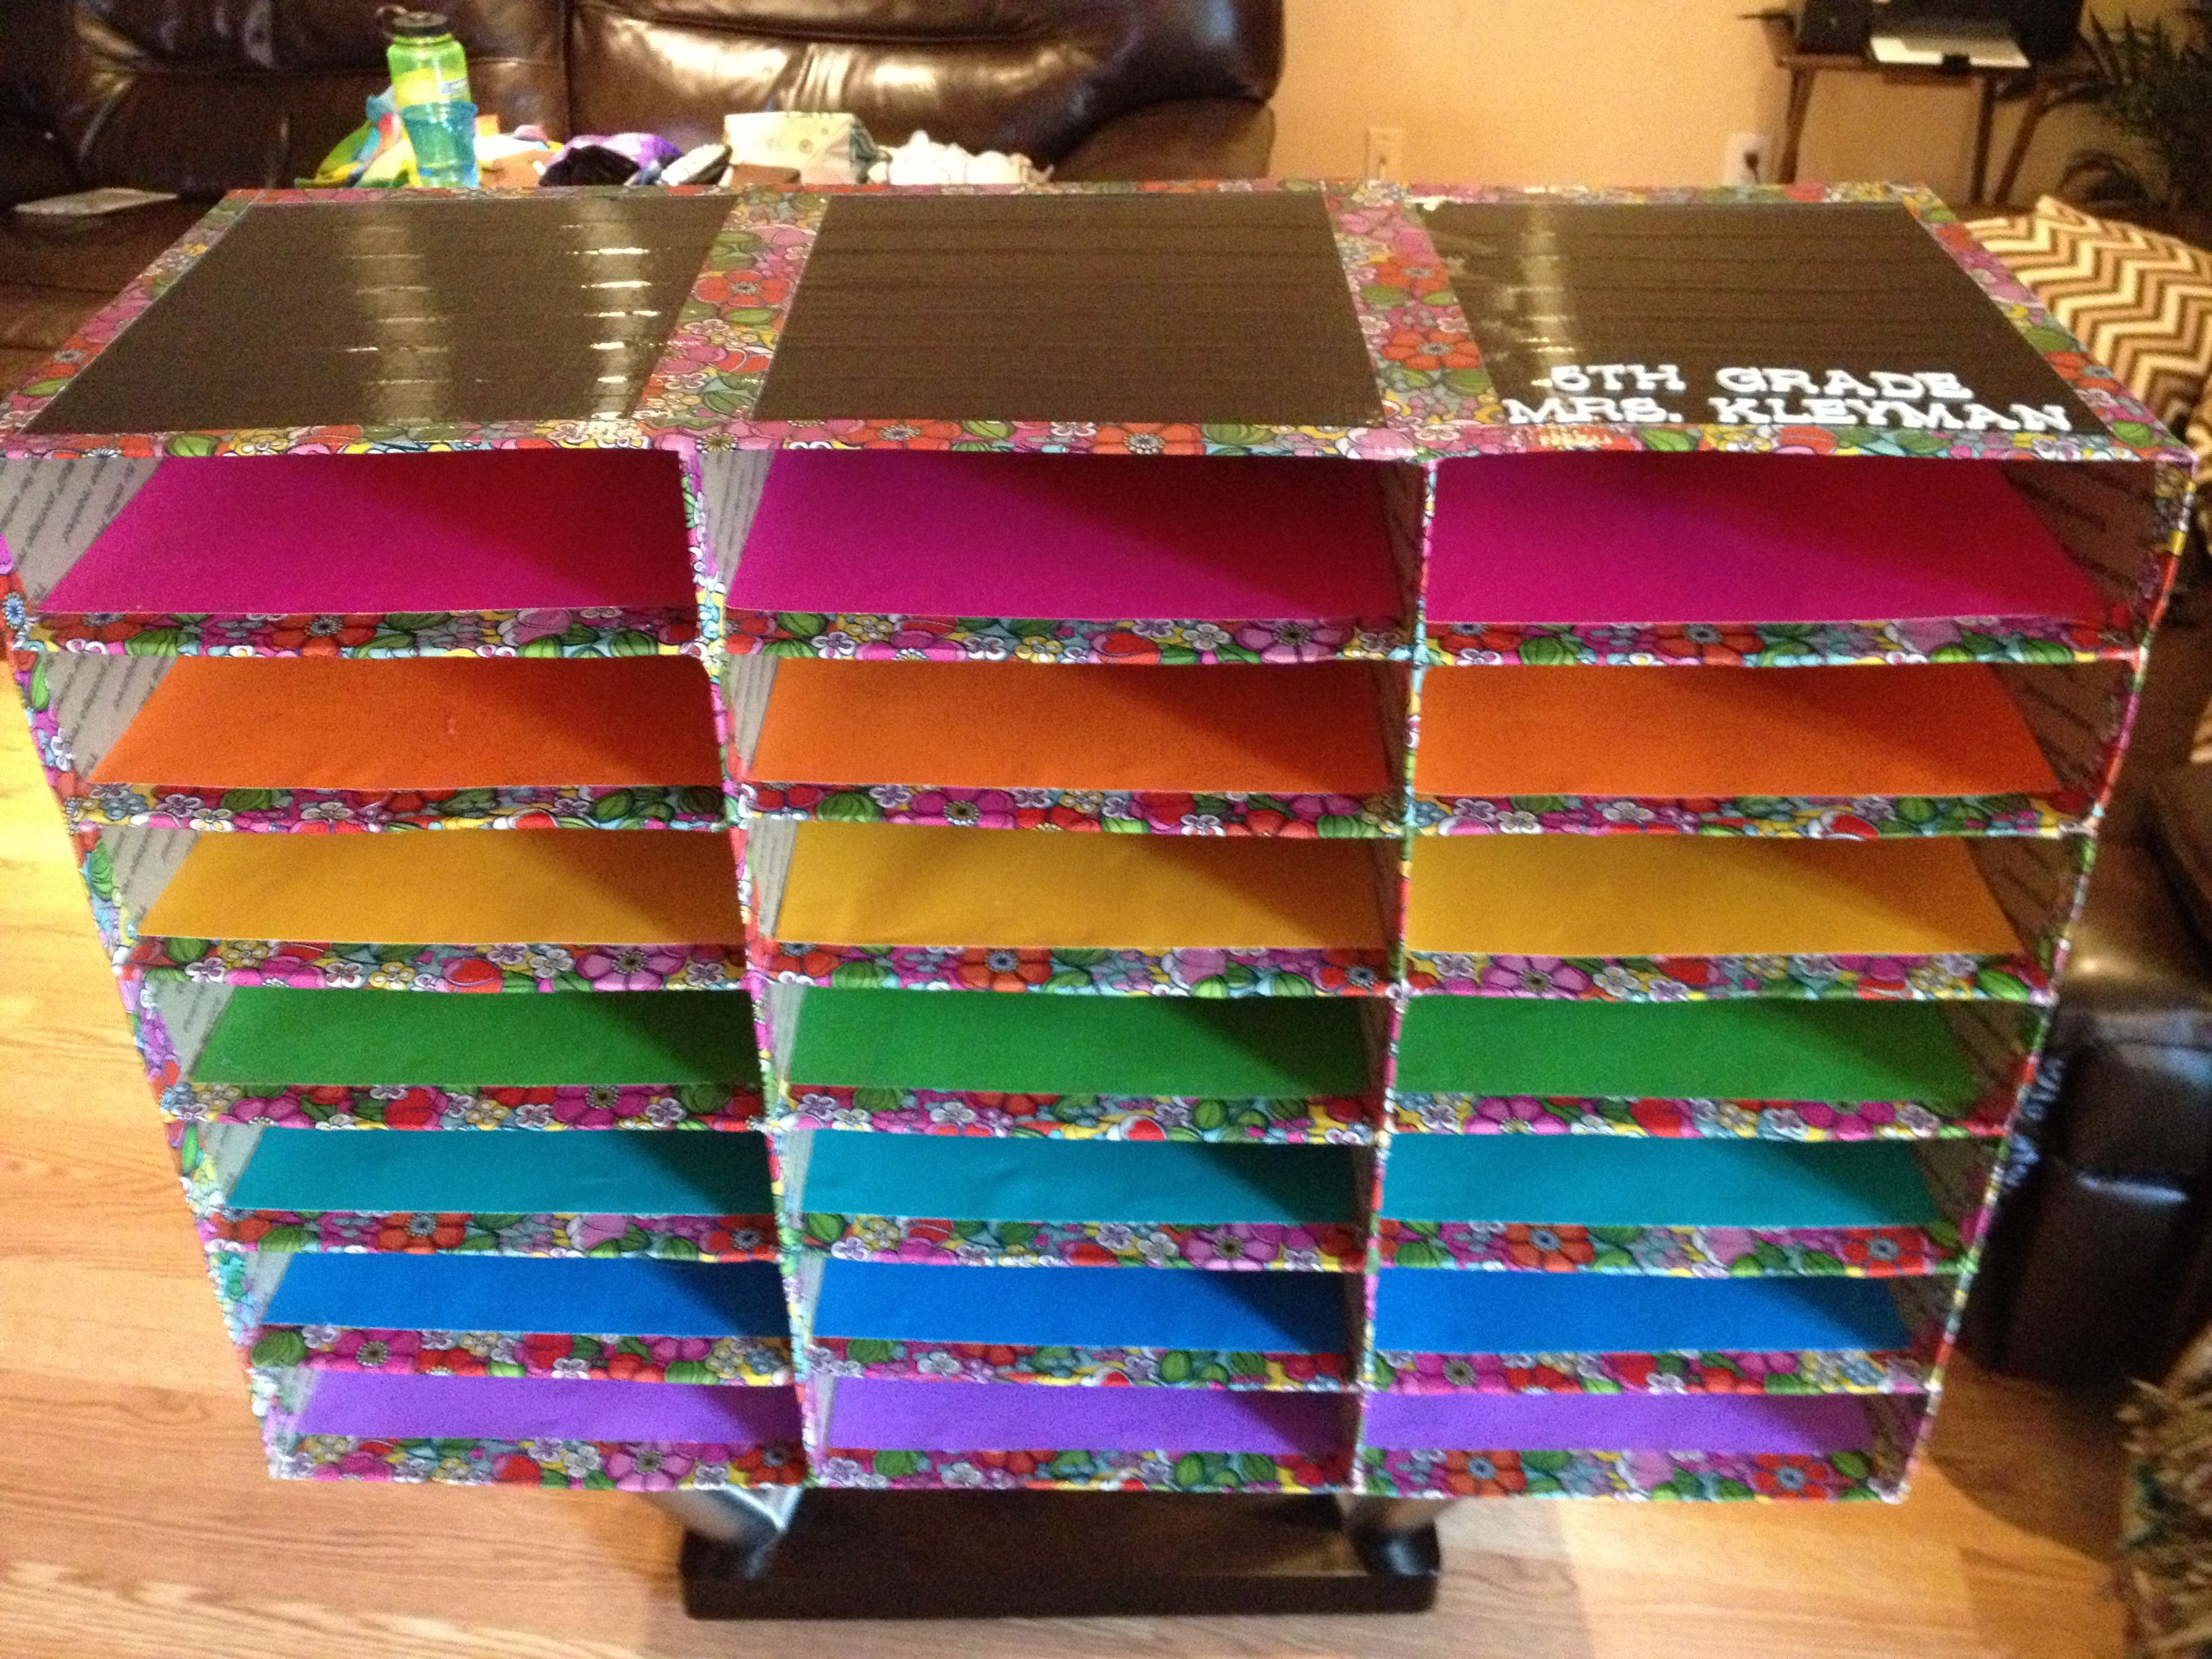 Best ideas about Classroom Mailboxes DIY . Save or Pin My DIY classroom mailboxes using flat rate shipping boxes Now.